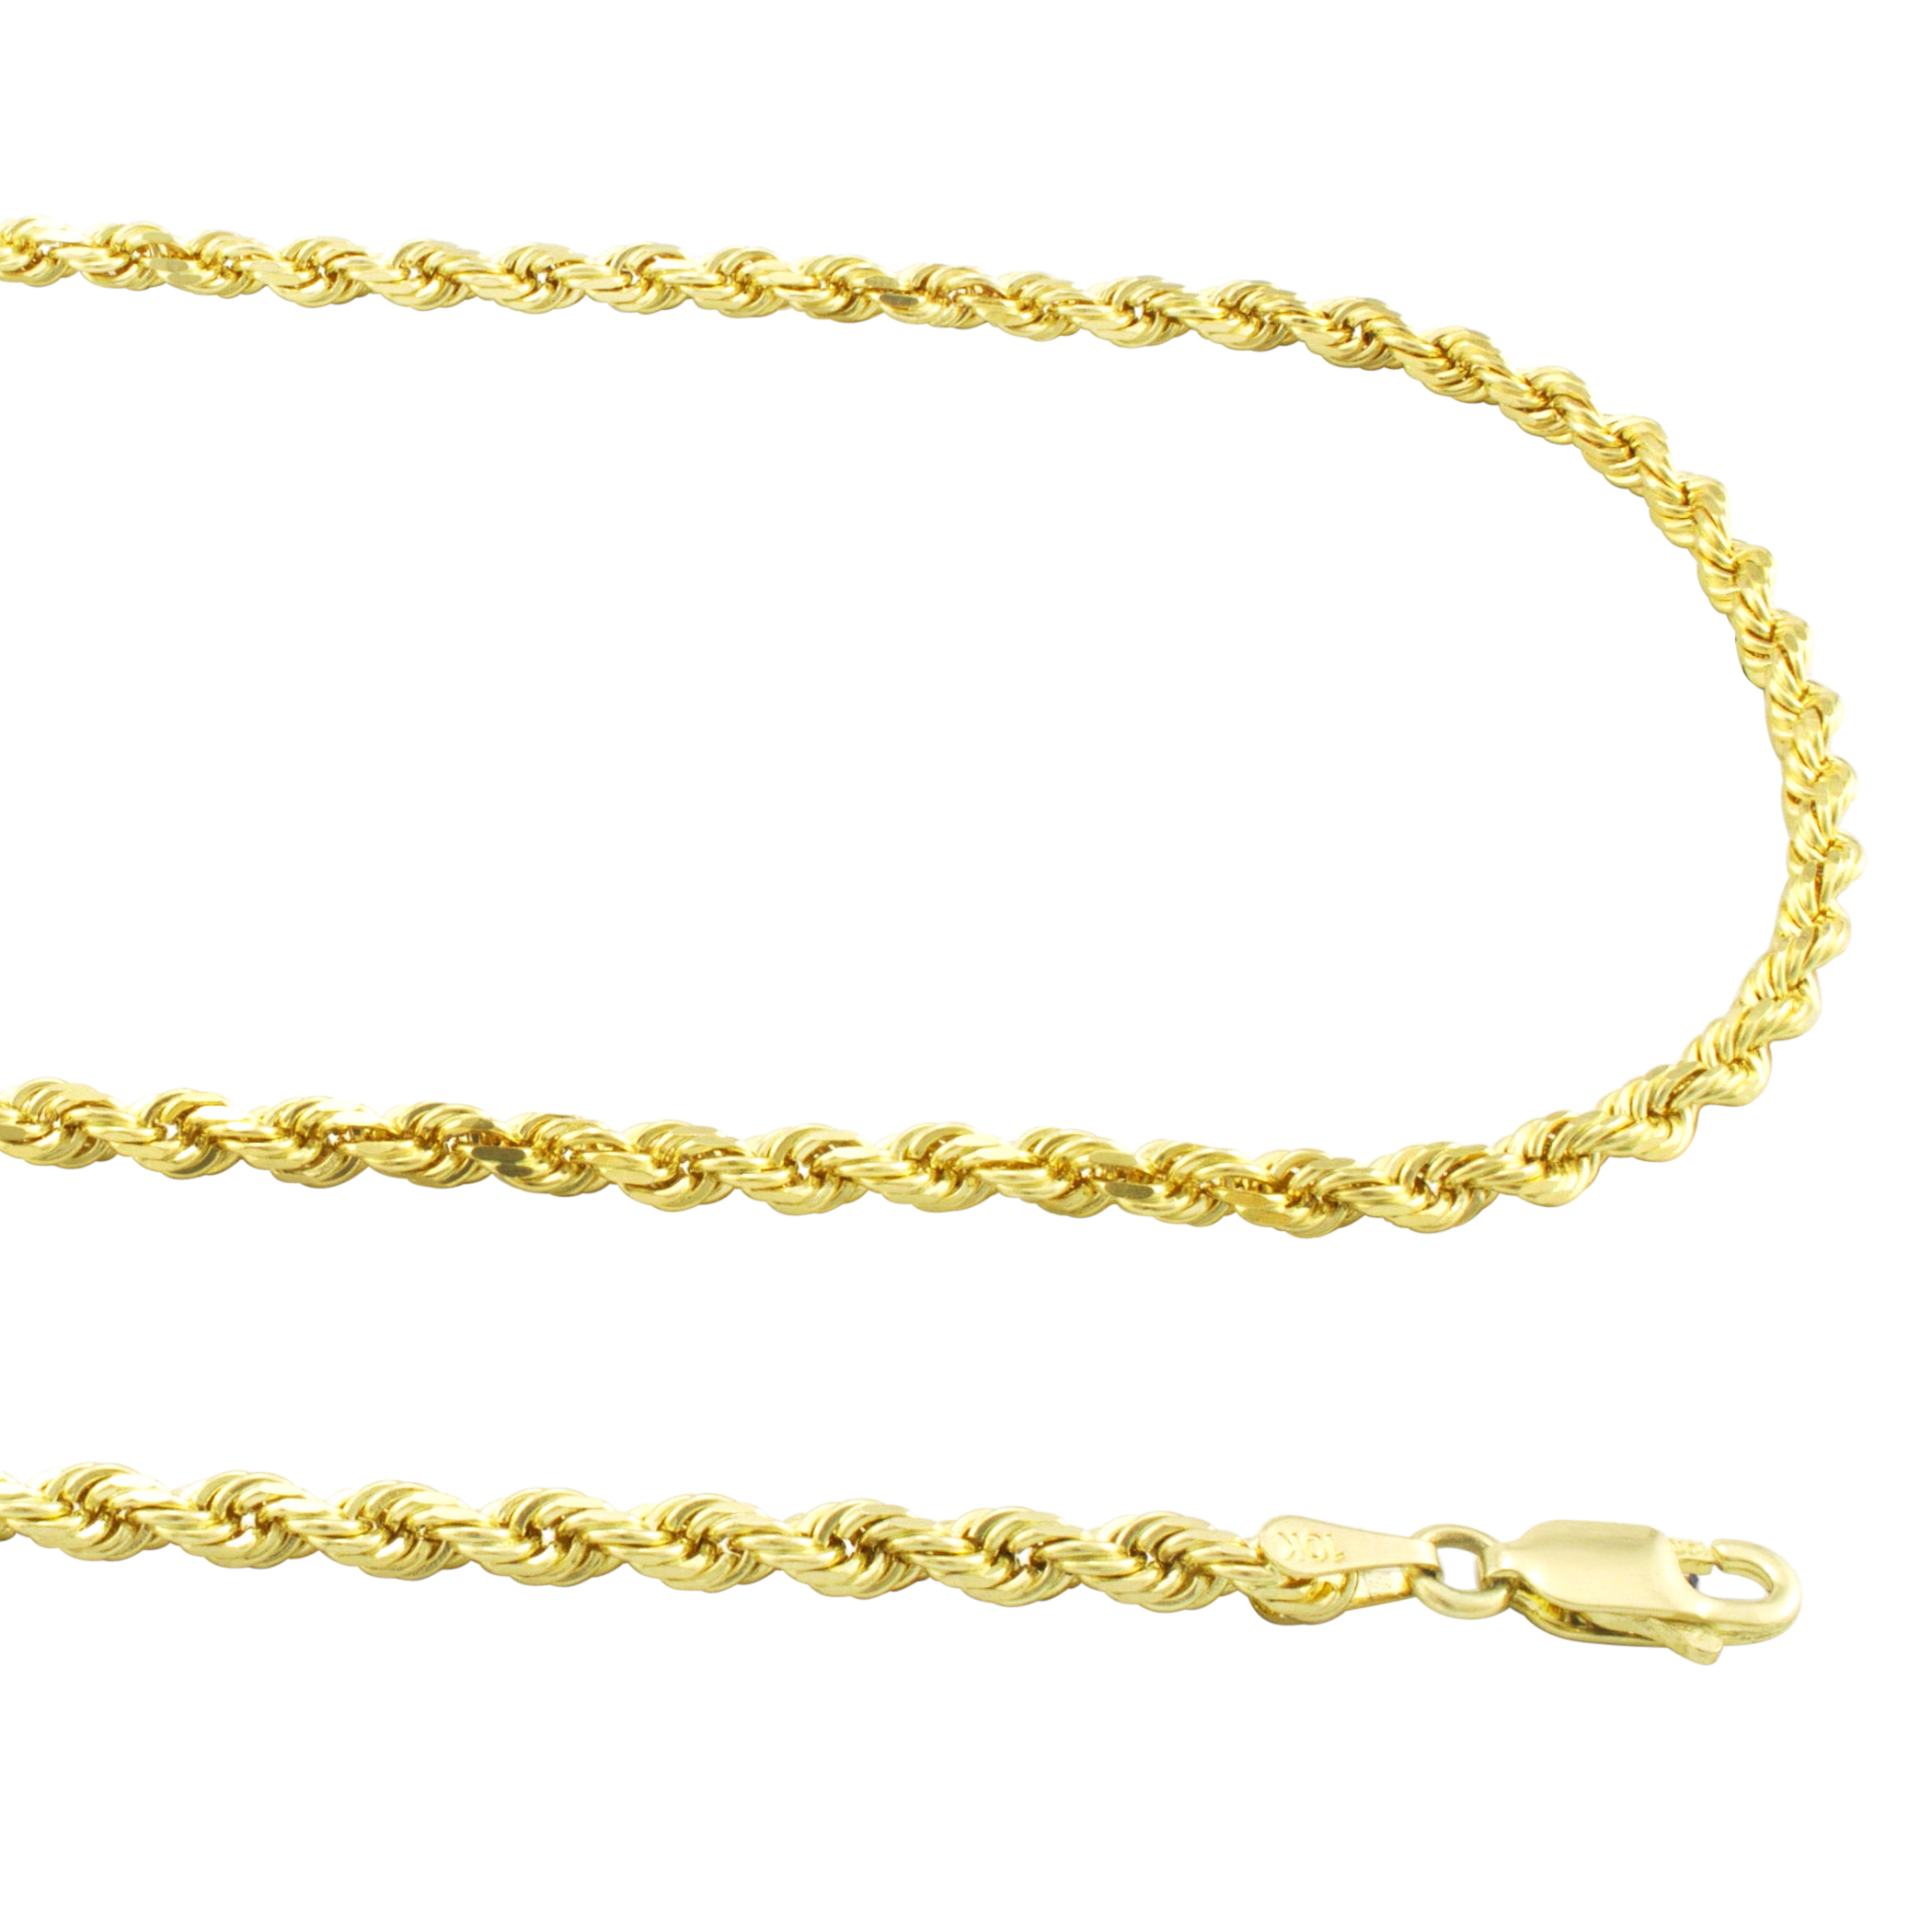 "10K Yellow Gold Mens Women/'s Rope Chain Necklace 3.5MM 16/"" 30/"" All Sizes"